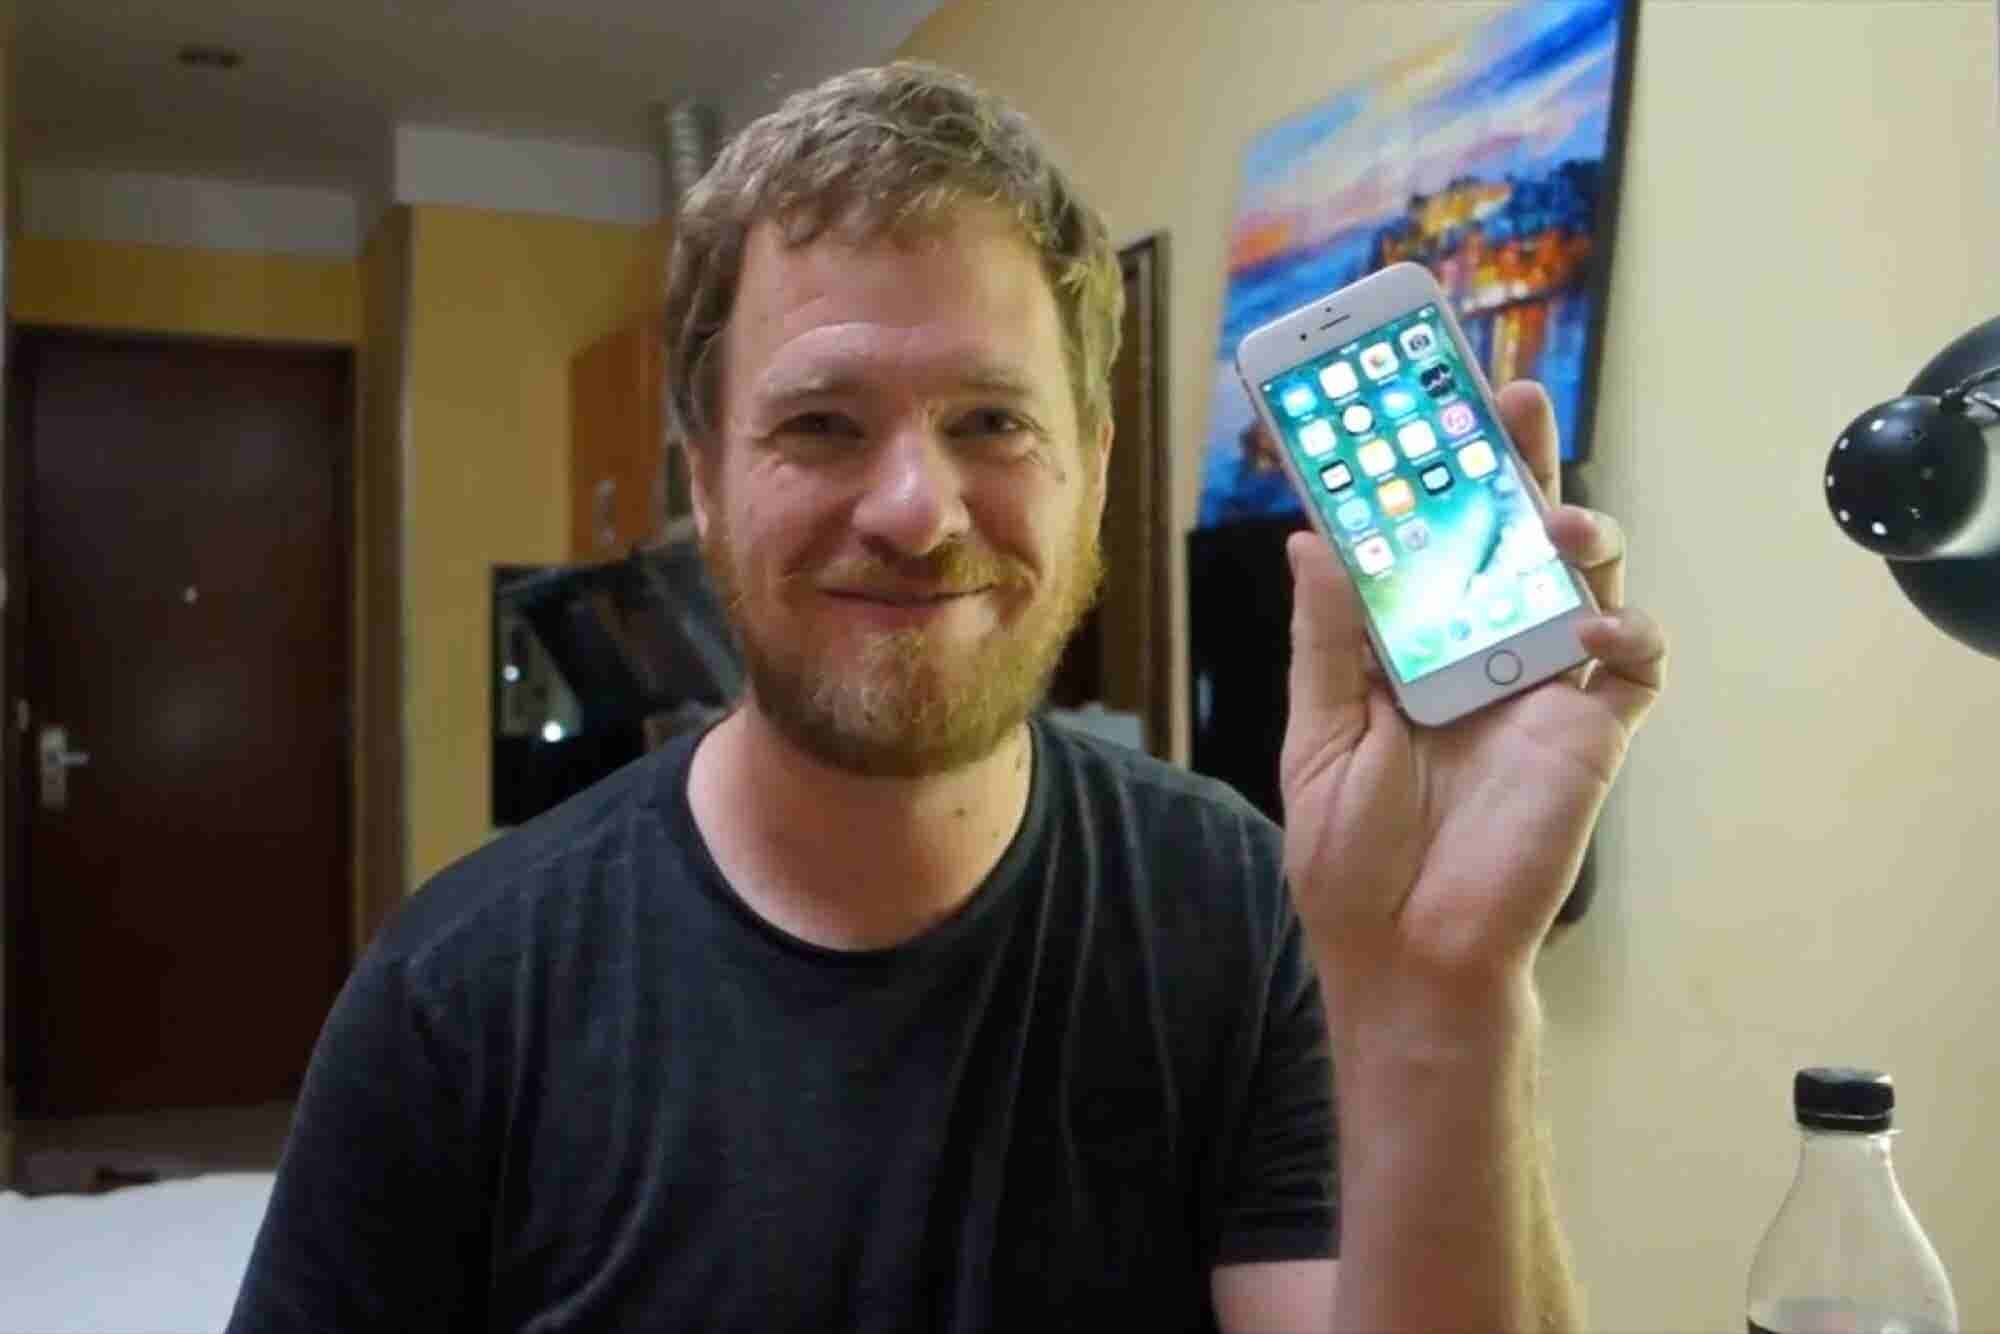 Geek Builds His Own iPhone Using Chinese Market Parts